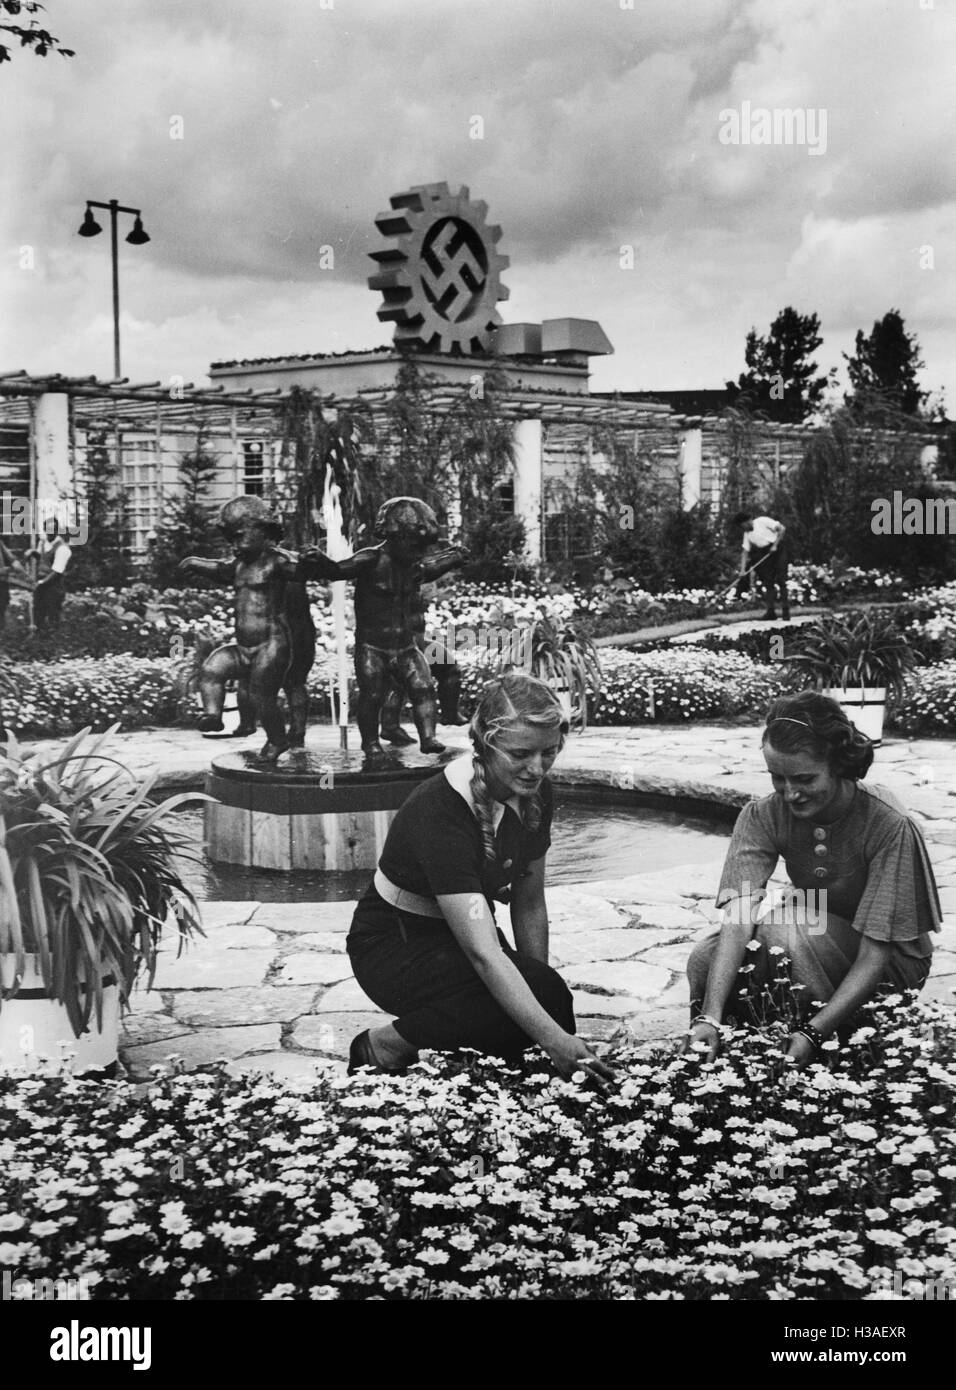 National socialist symbolism at the garden show in berlin 1934 stock image